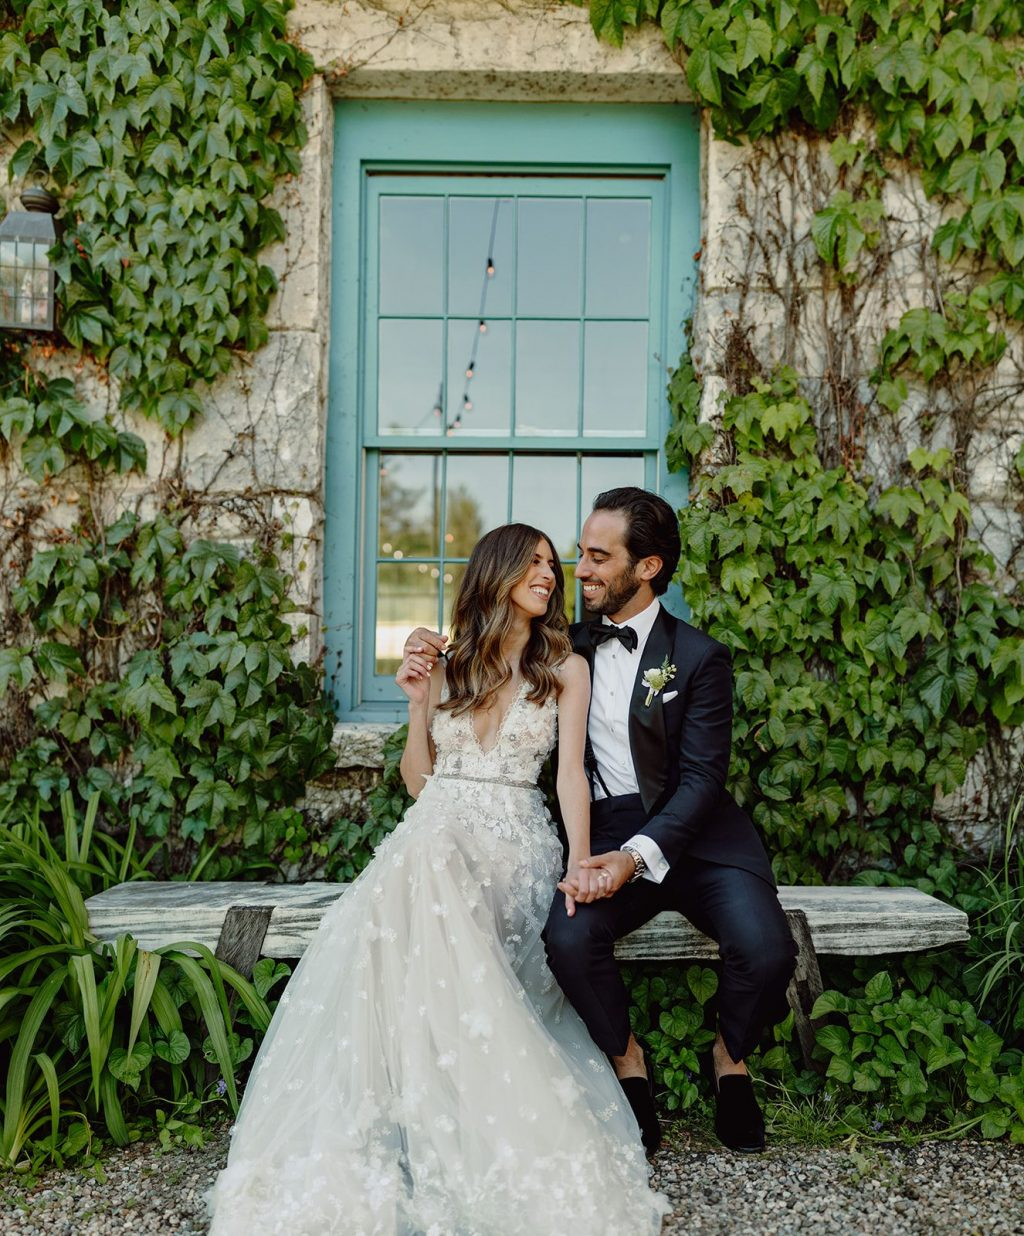 Q: CAN YOU SHARE WITH US A BIT ABOUT YOUR WEDDING AND YOUR INSPIRATION FOR THE EVENT?